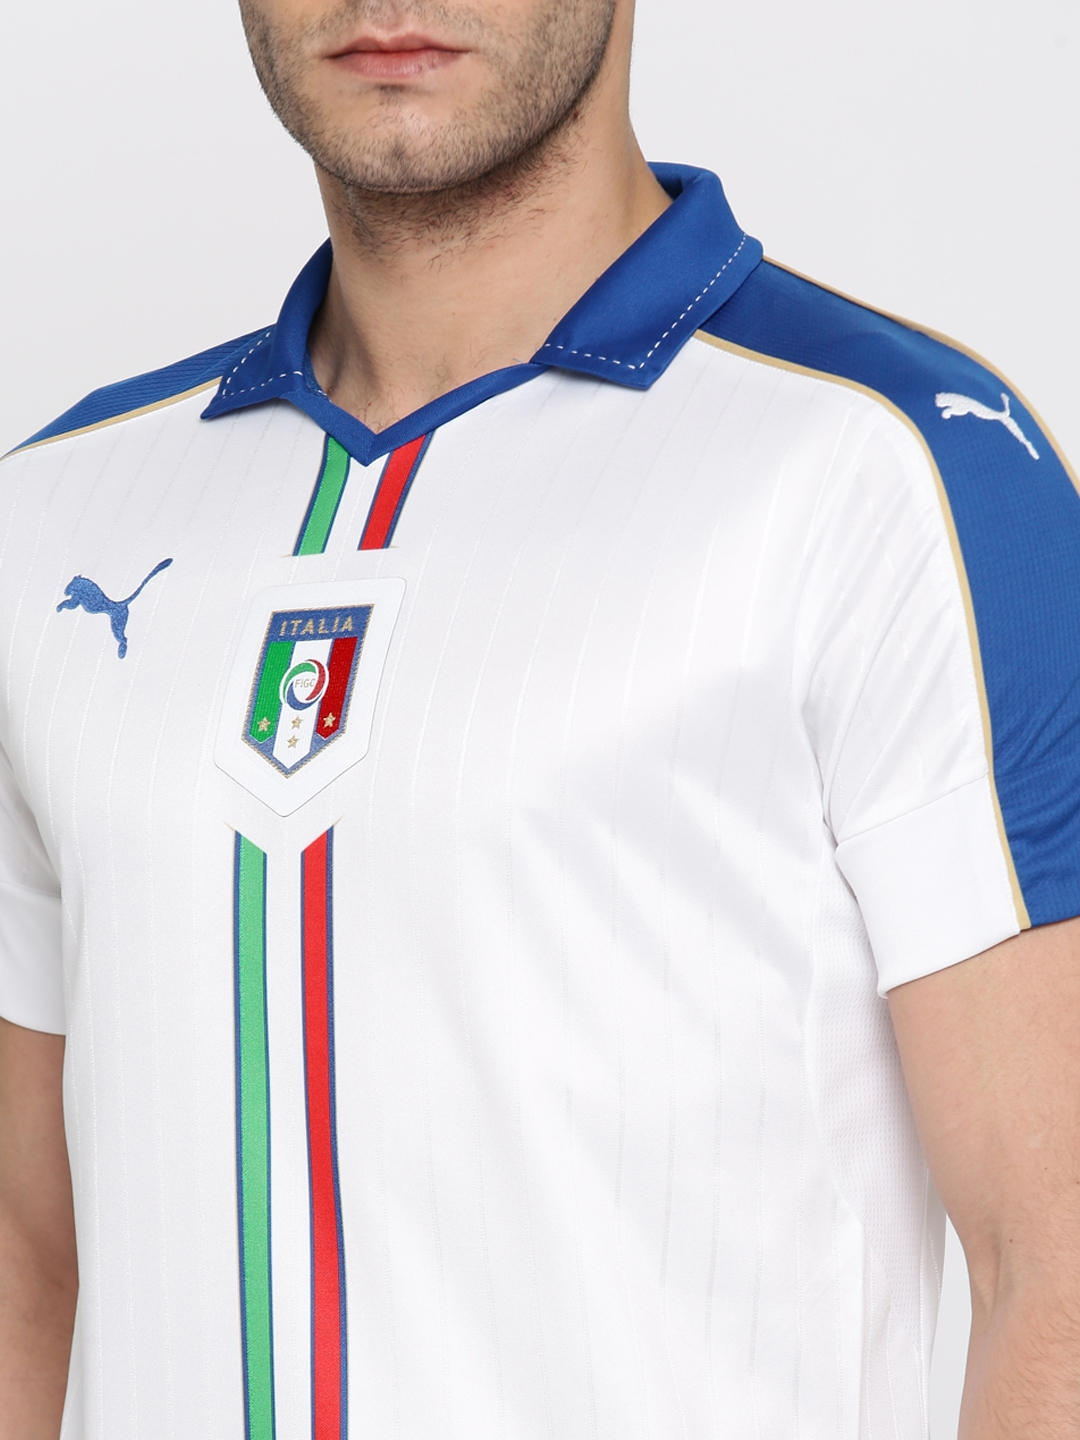 2663490d3 Buy Puma Men White Striped FIGC Italia Away Shirt Replica T Shirt ...